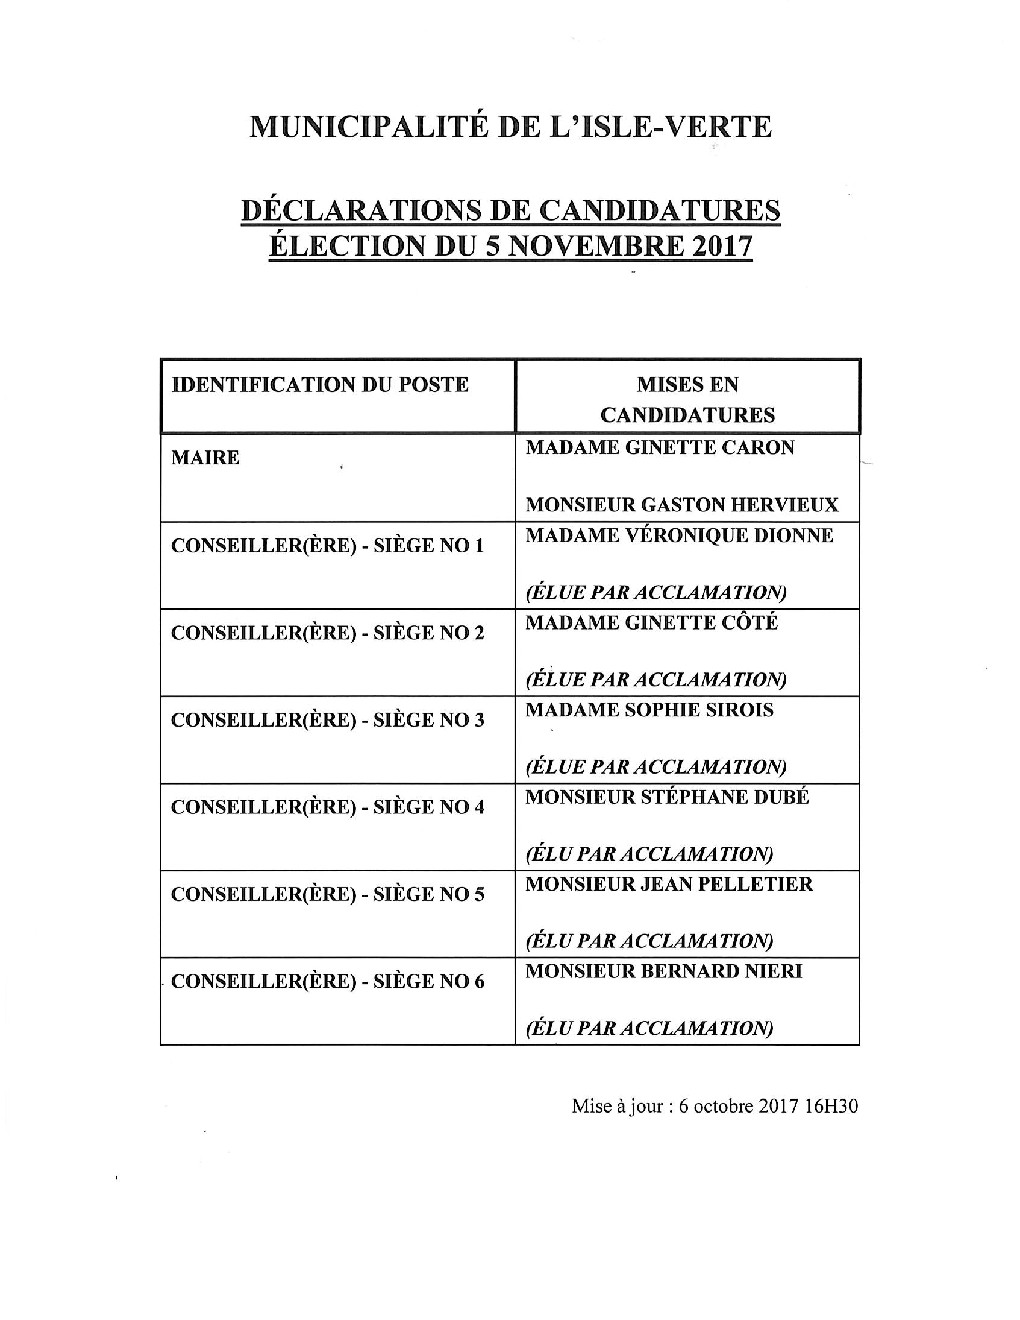 Déclarations de candidatures